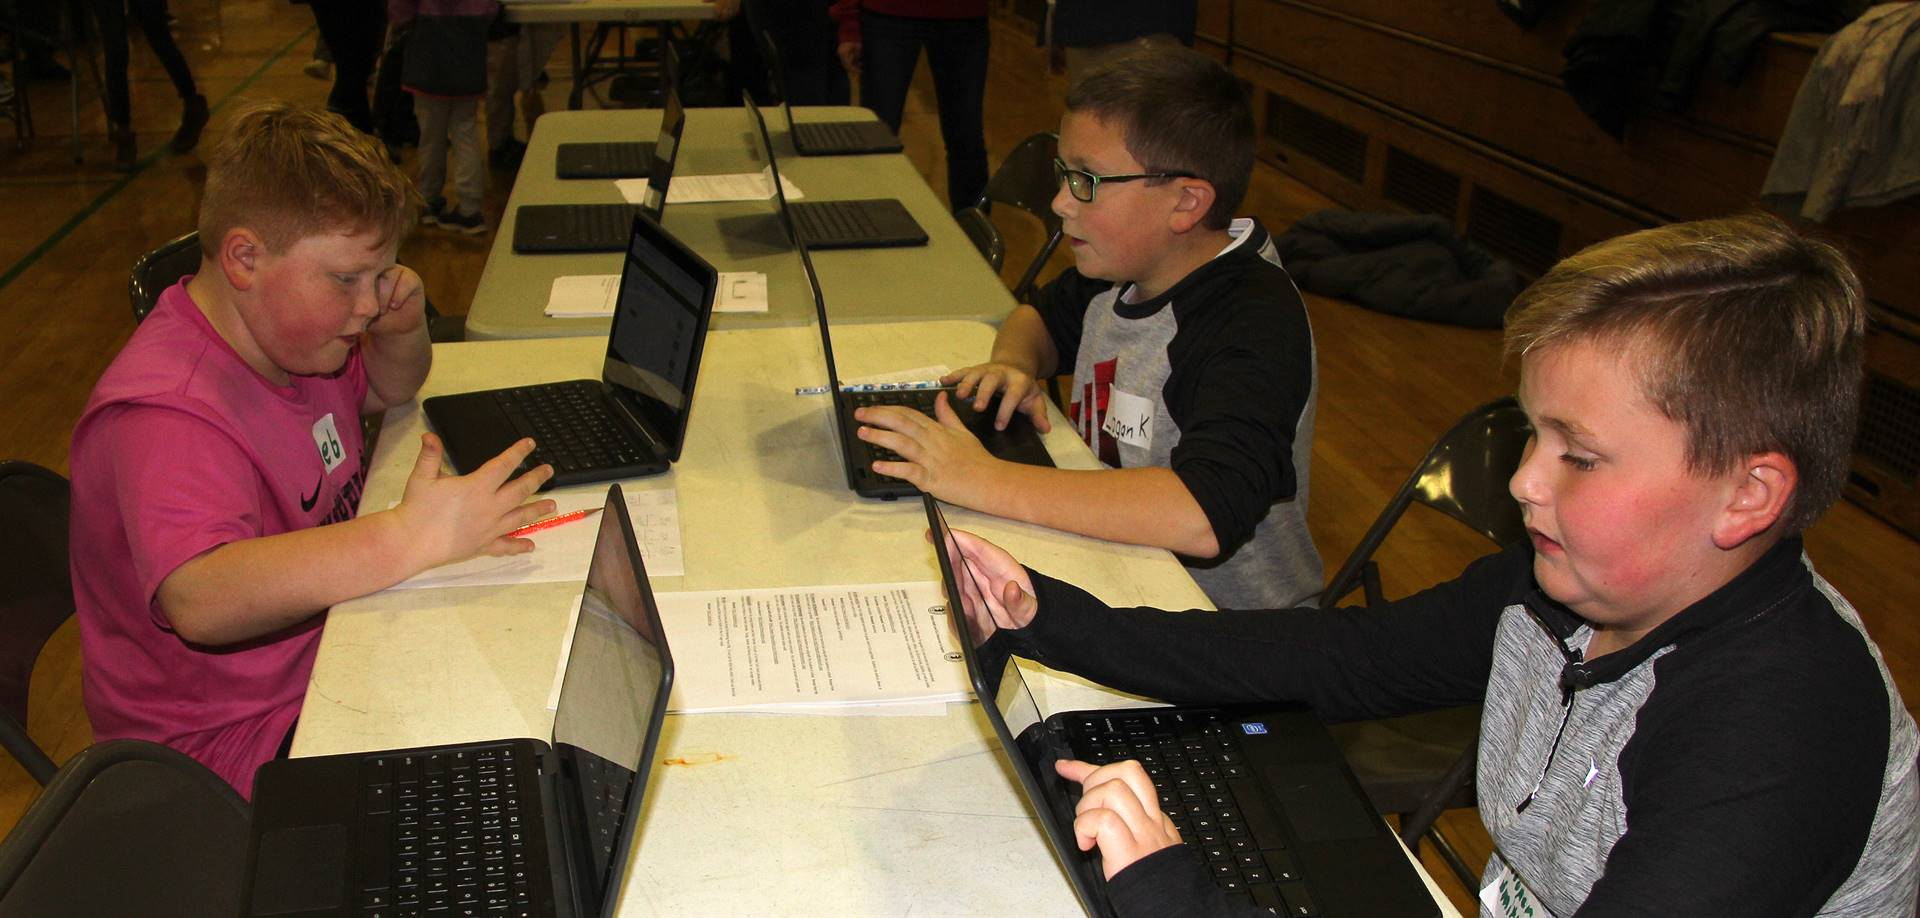 students on computers at activity station